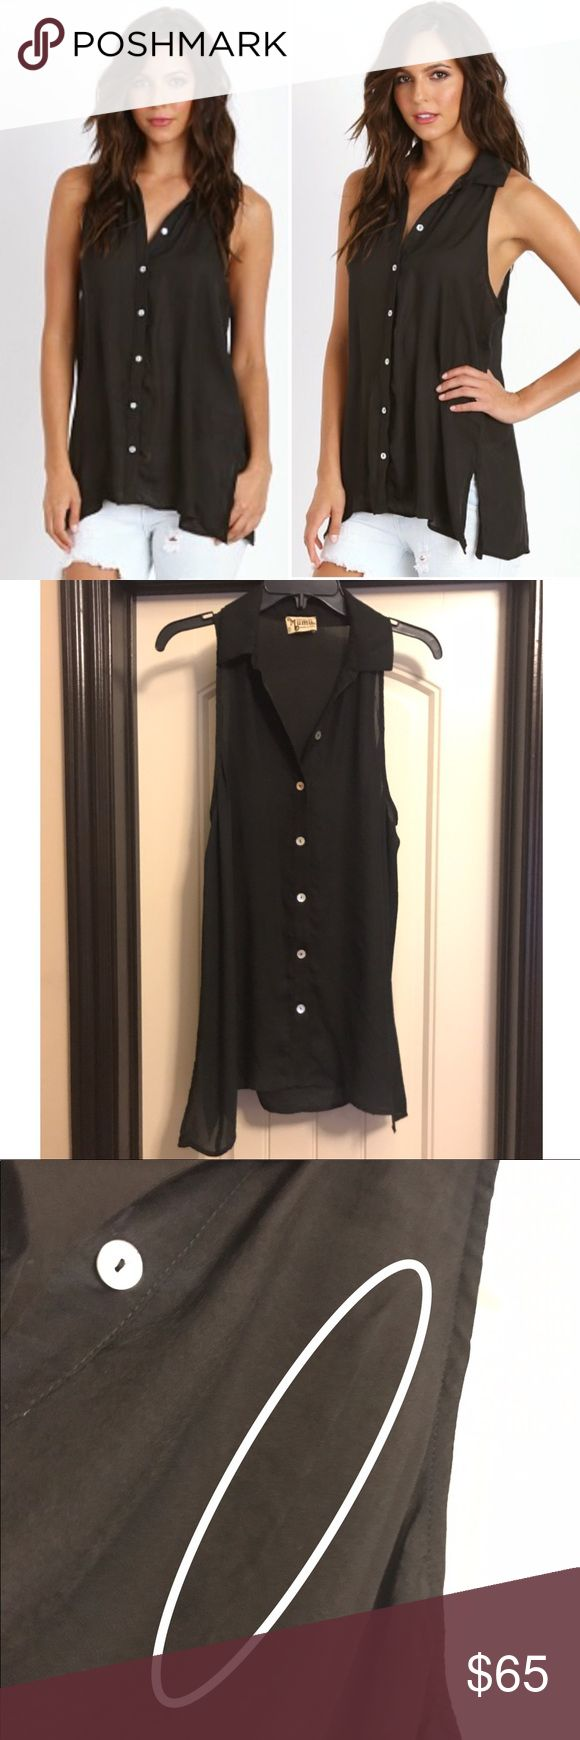 Show Me Your Mumu Caz Collared Top Caz Collared Top in Black Silky Satin. Pull on front, but not noticeable when worn Show Me Your MuMu Tops